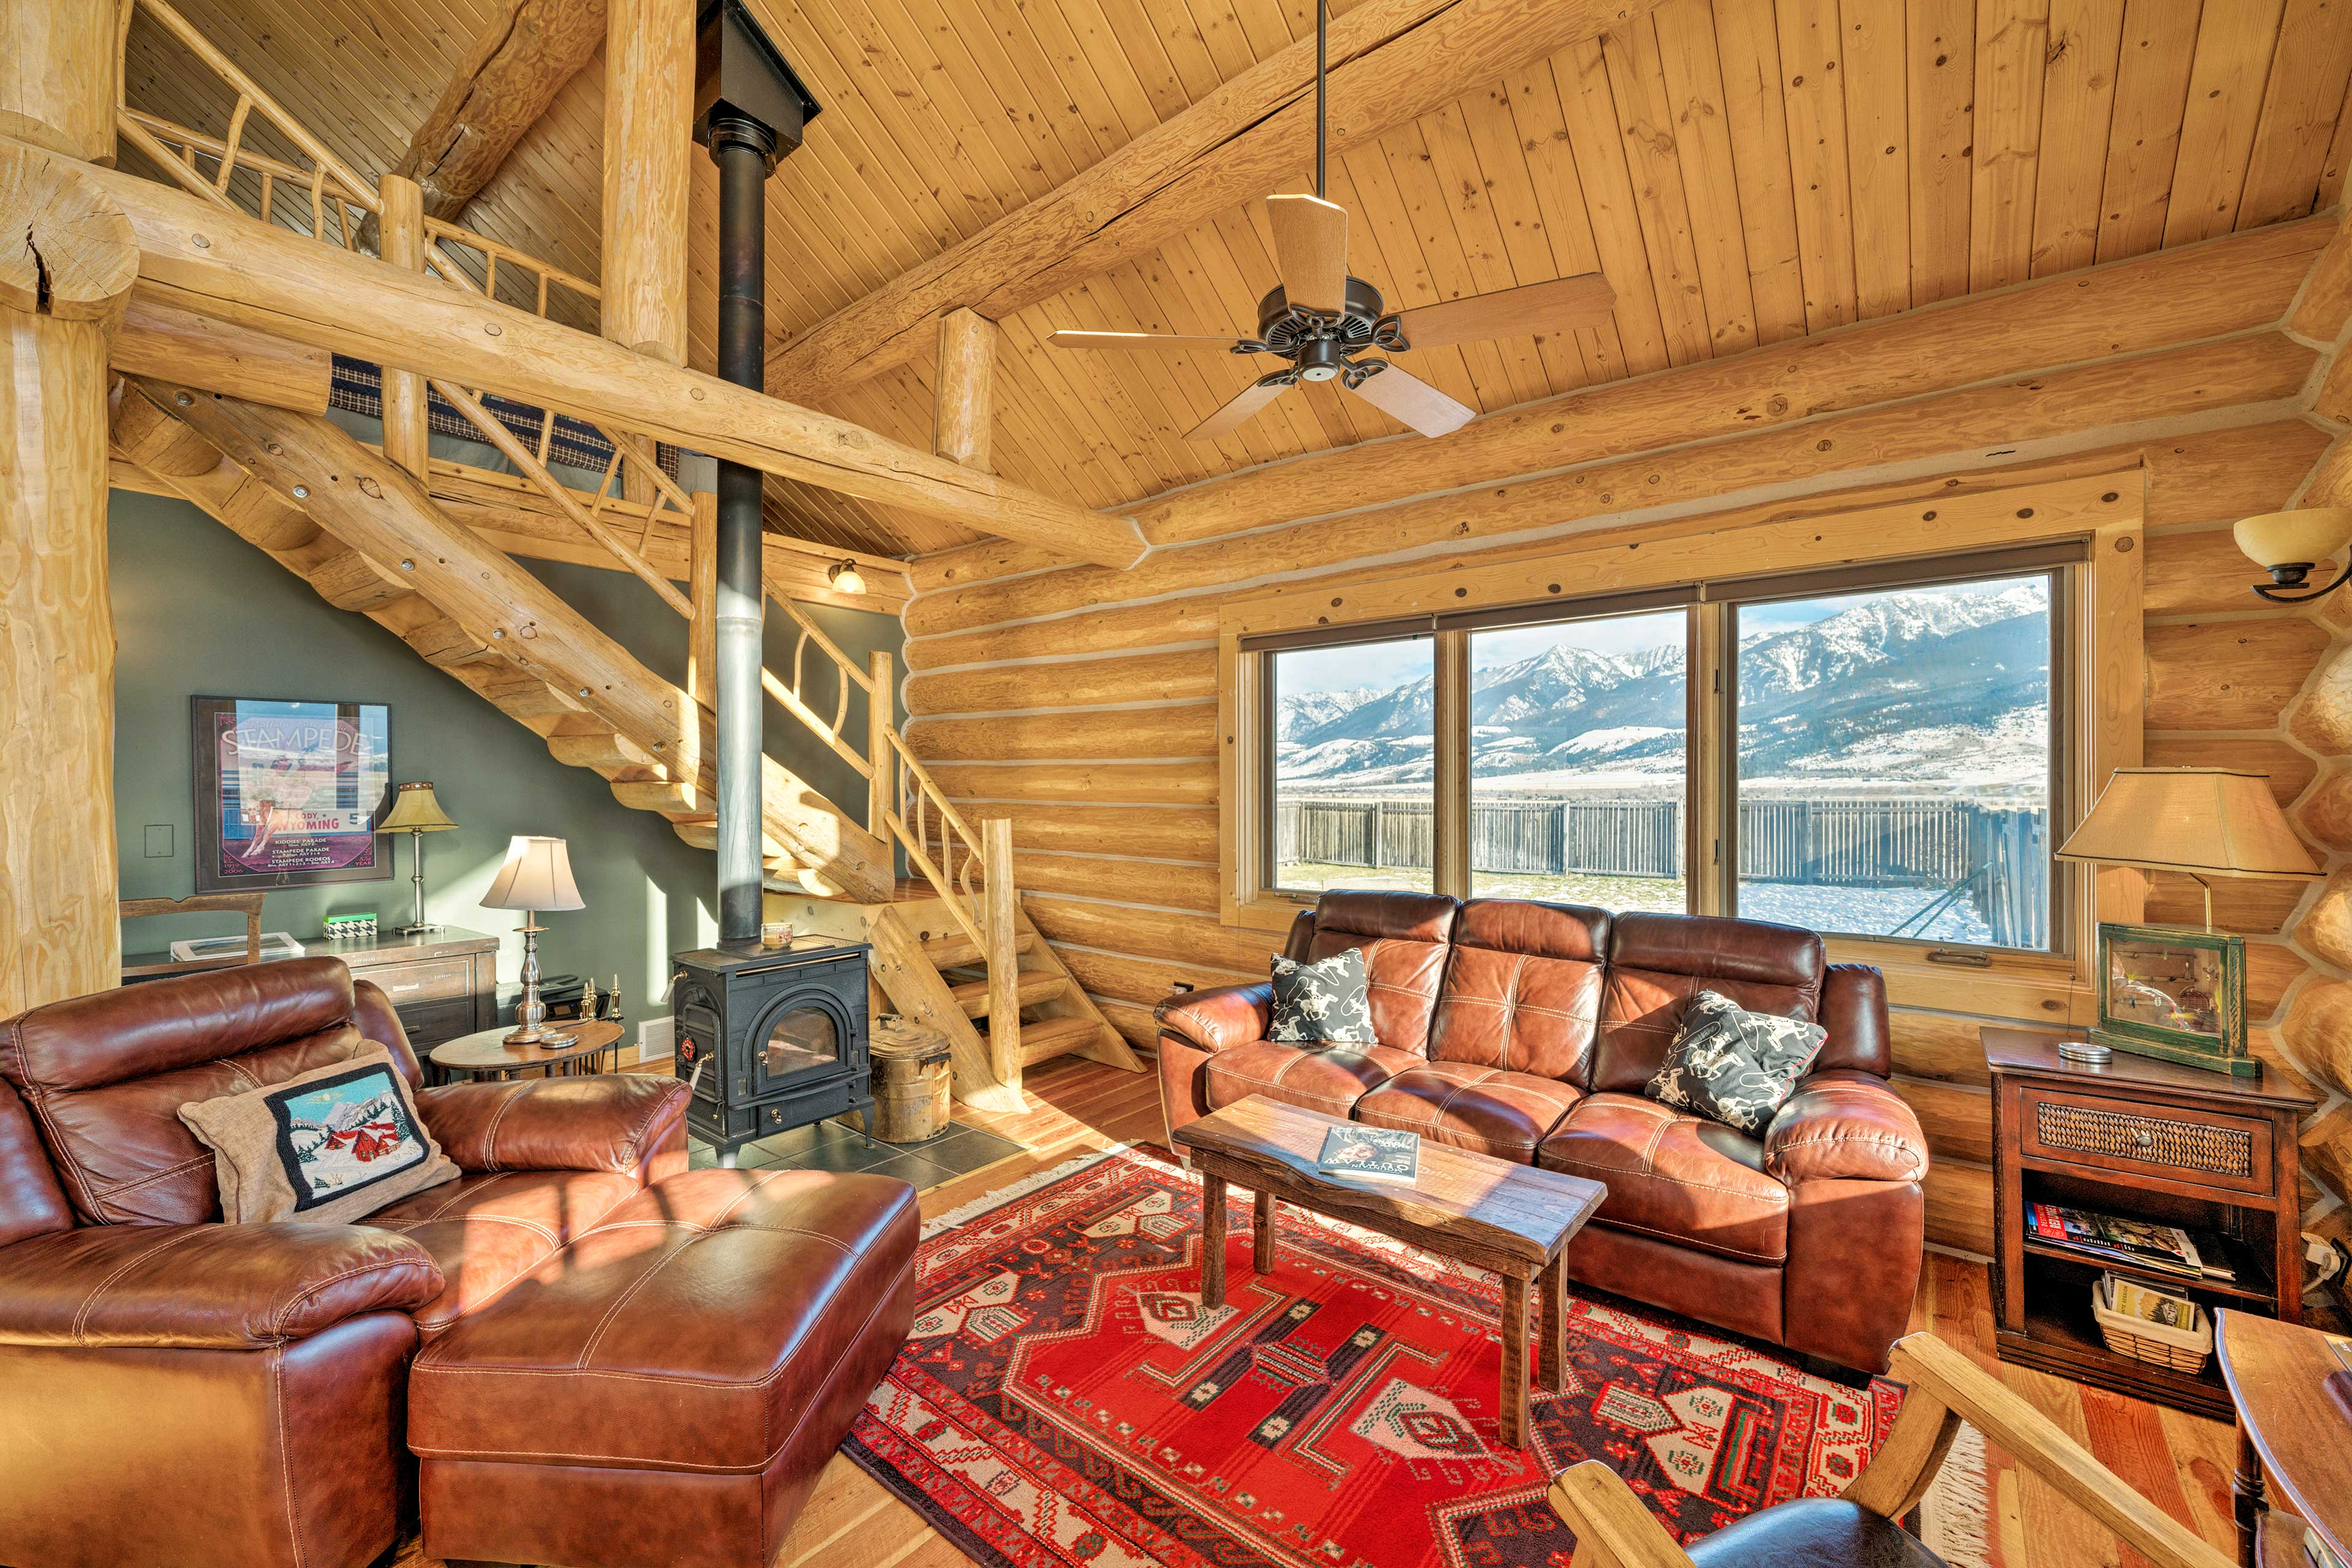 This rustic interior features 1 bedroom and 1.5 baths - perfect for 5 guests.